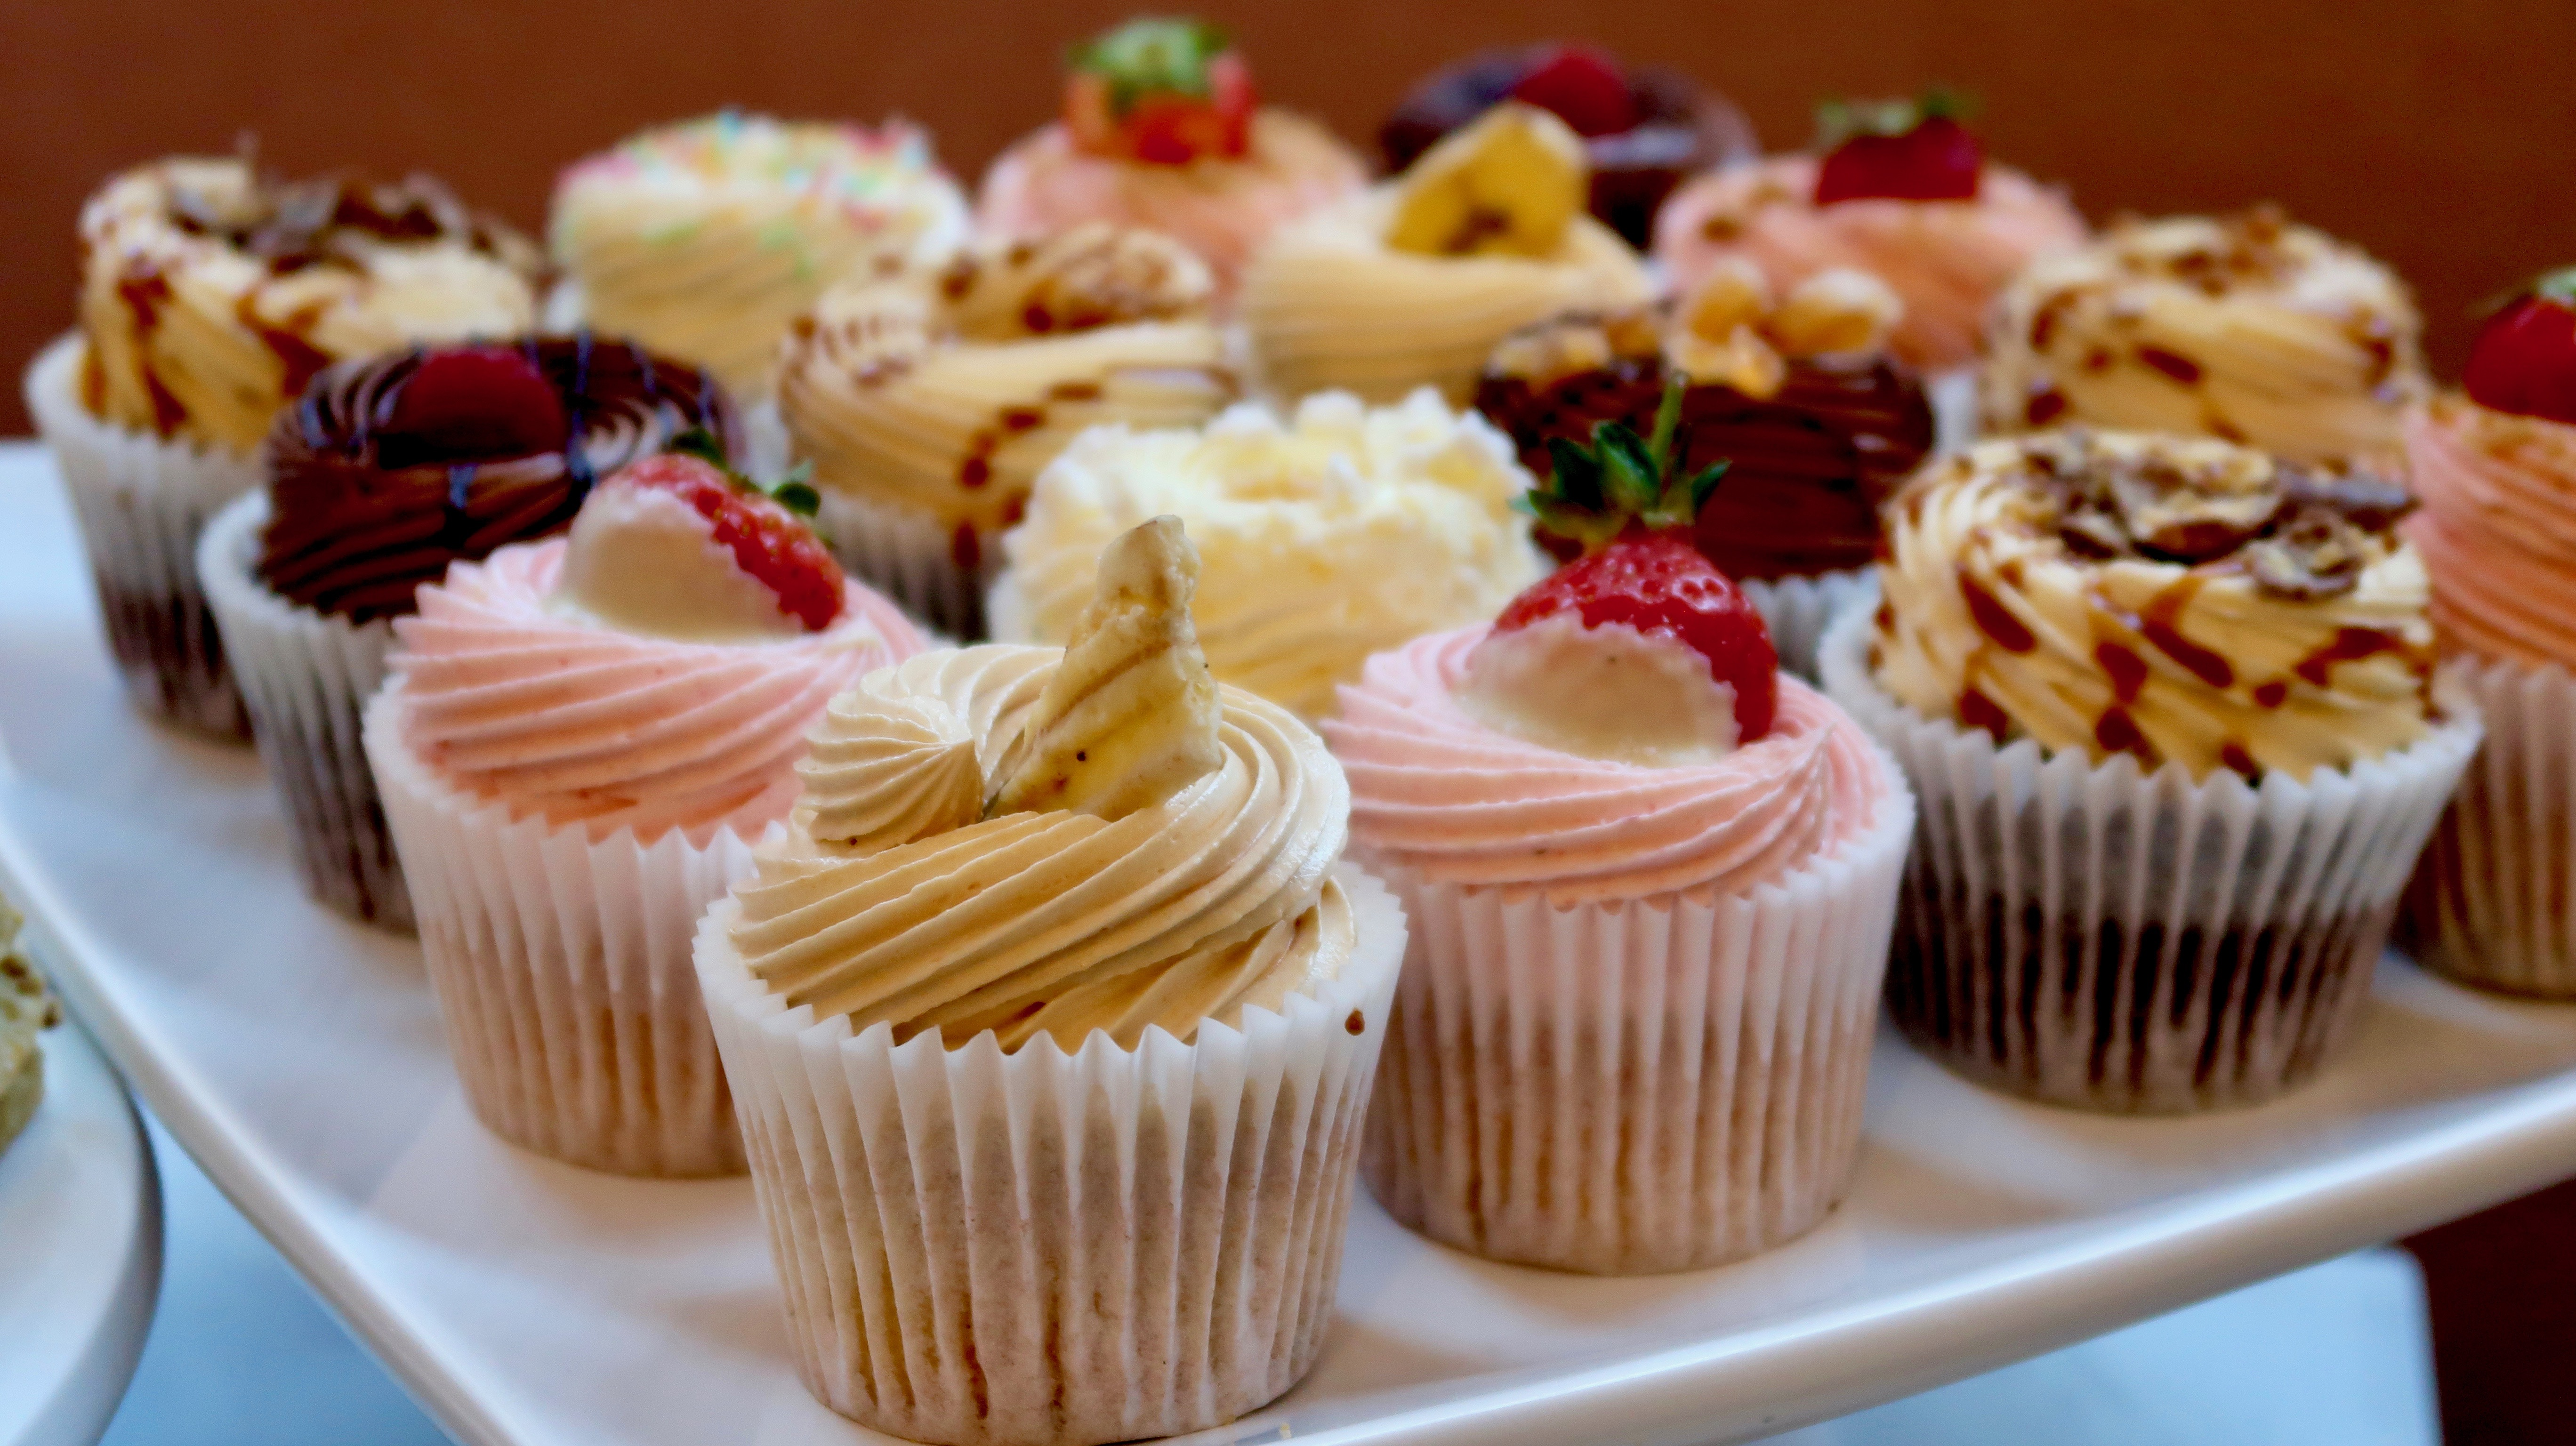 Most Instagrammable Place in Newcastle | The Great British Cupcakery Boutique Bakery and Parlour | Food Review | Elle Blonde Luxury Lifestyle Destination Blog